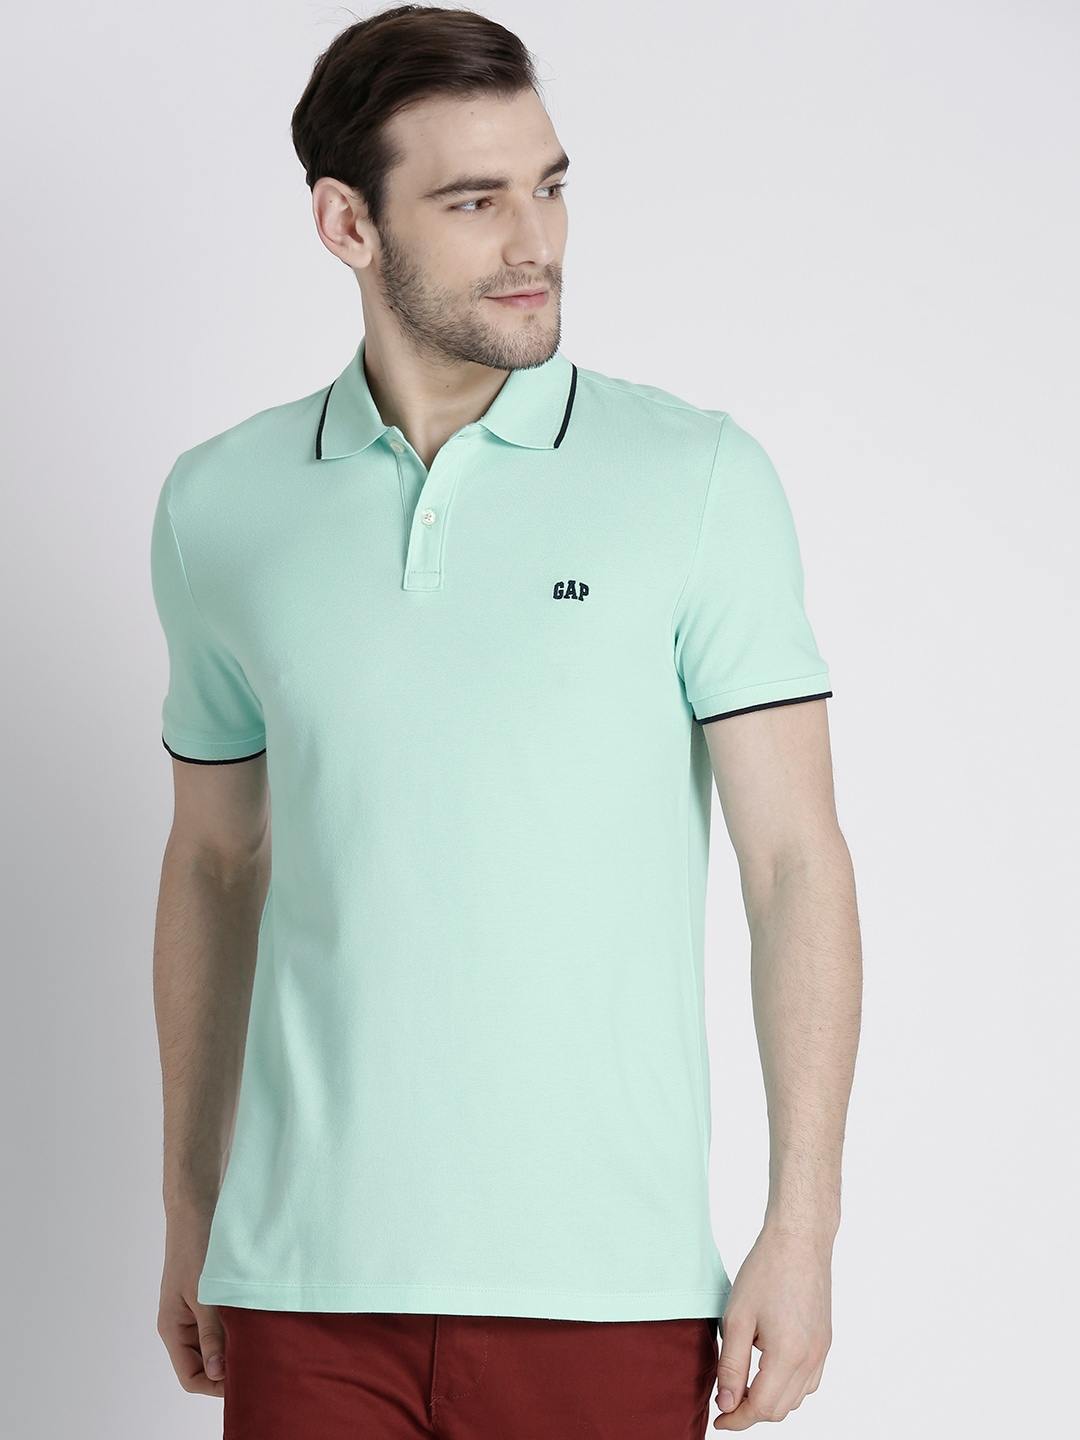 d98c196d0fa35 GAP - Shop from GAP Latest Collection Online